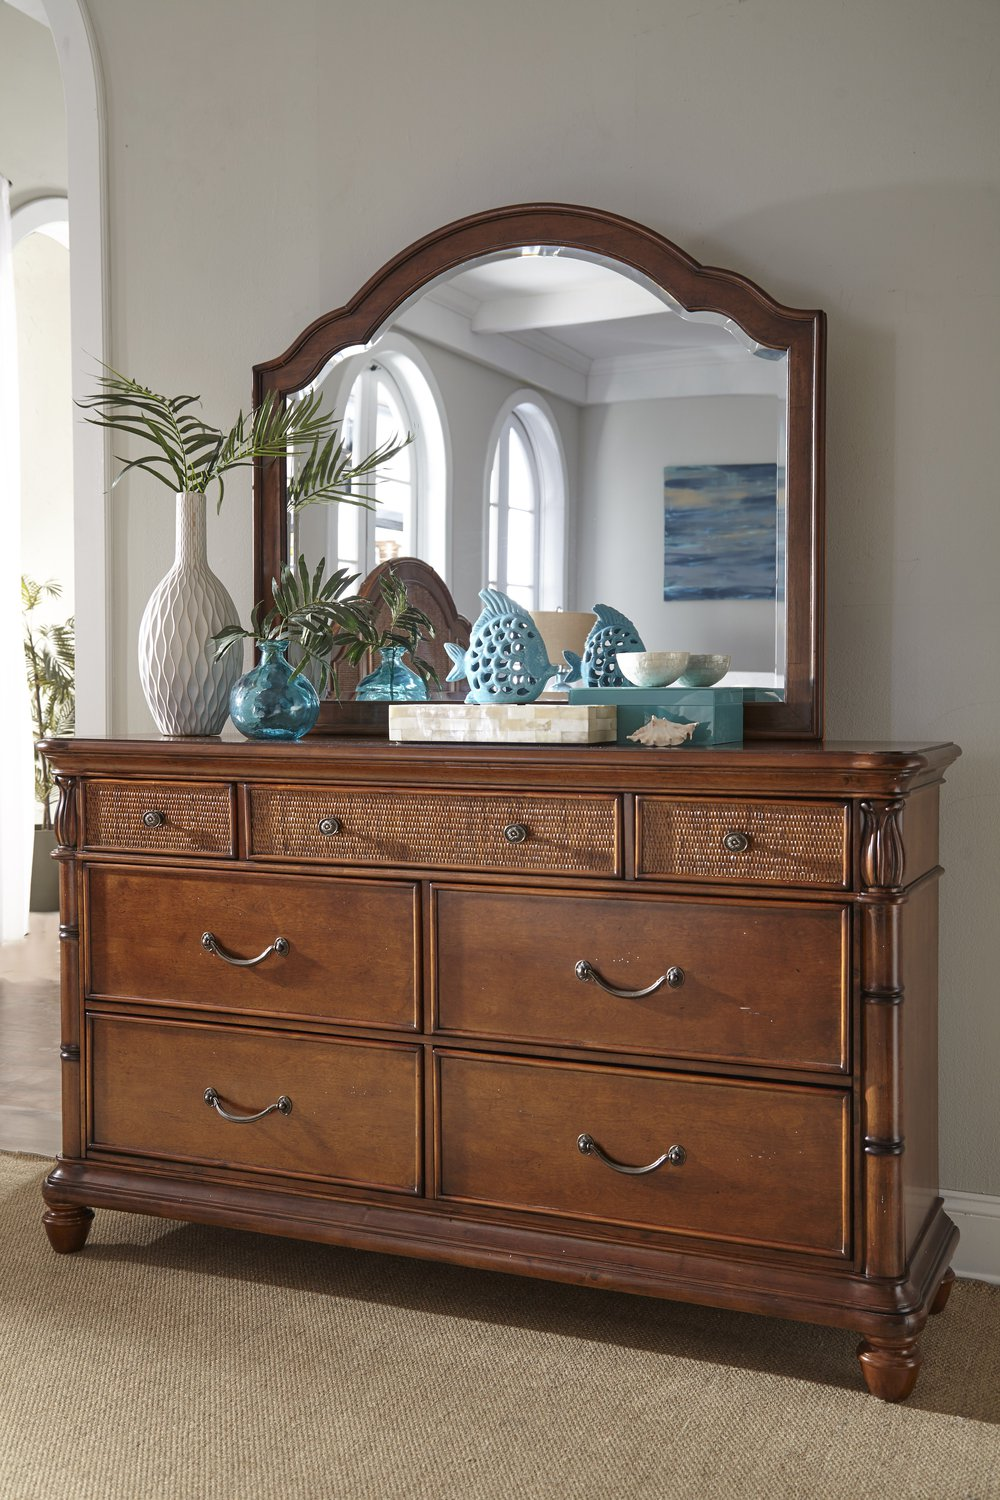 palmetto home panama isle of palms bedroom set in drawer dresser palmetto home 553